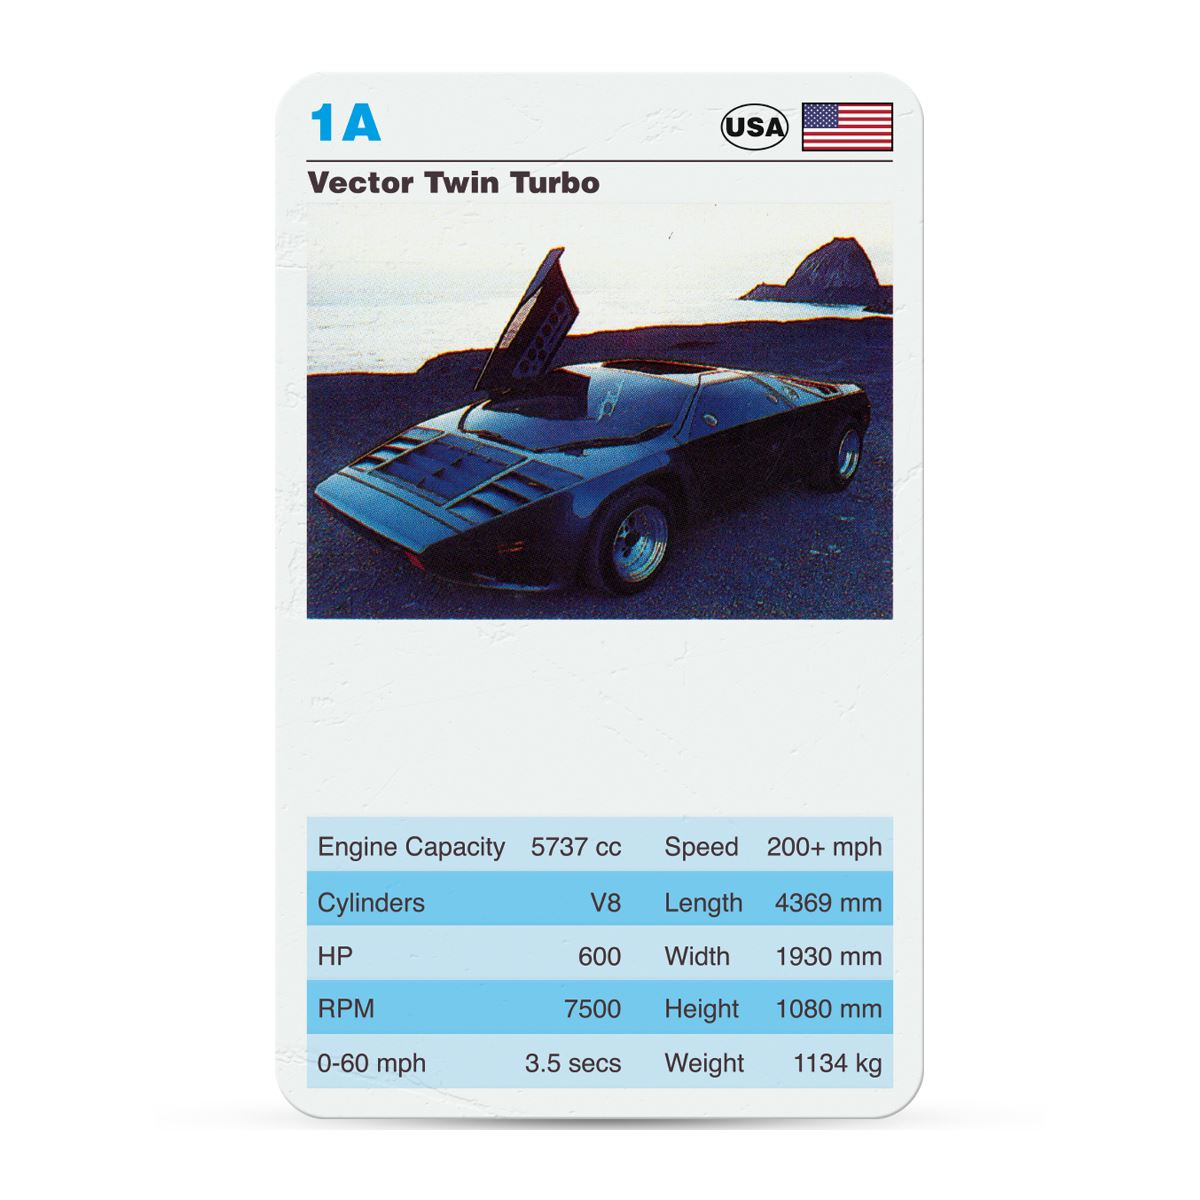 Exotic Sports Cars Retro Top Trumps Card Game - Sports cars top trumps